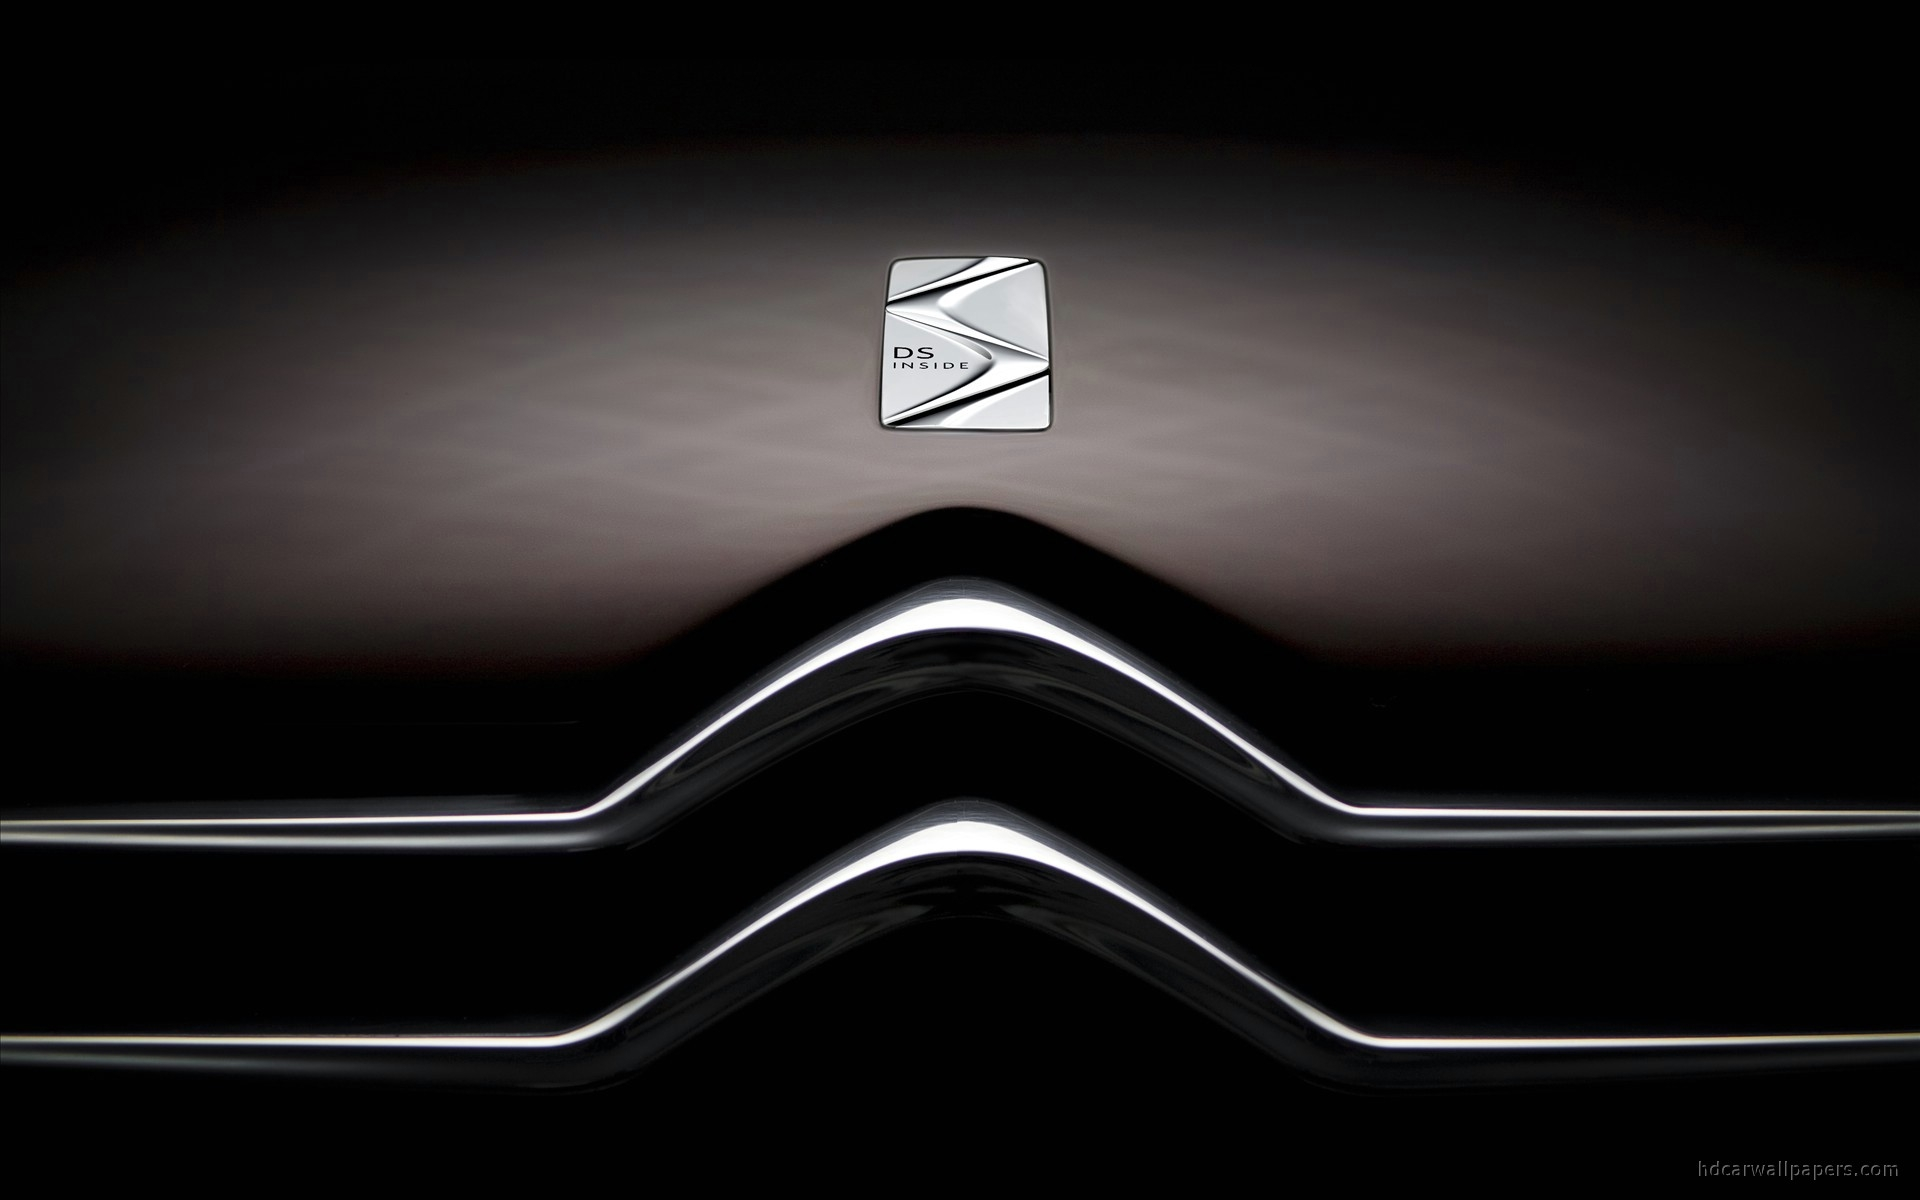 citroen-ds-inside-logo-Citroen-Ds-Inside-Logo-Pictures-Car-Hd-intended-for-wallpaper-wpc5803496